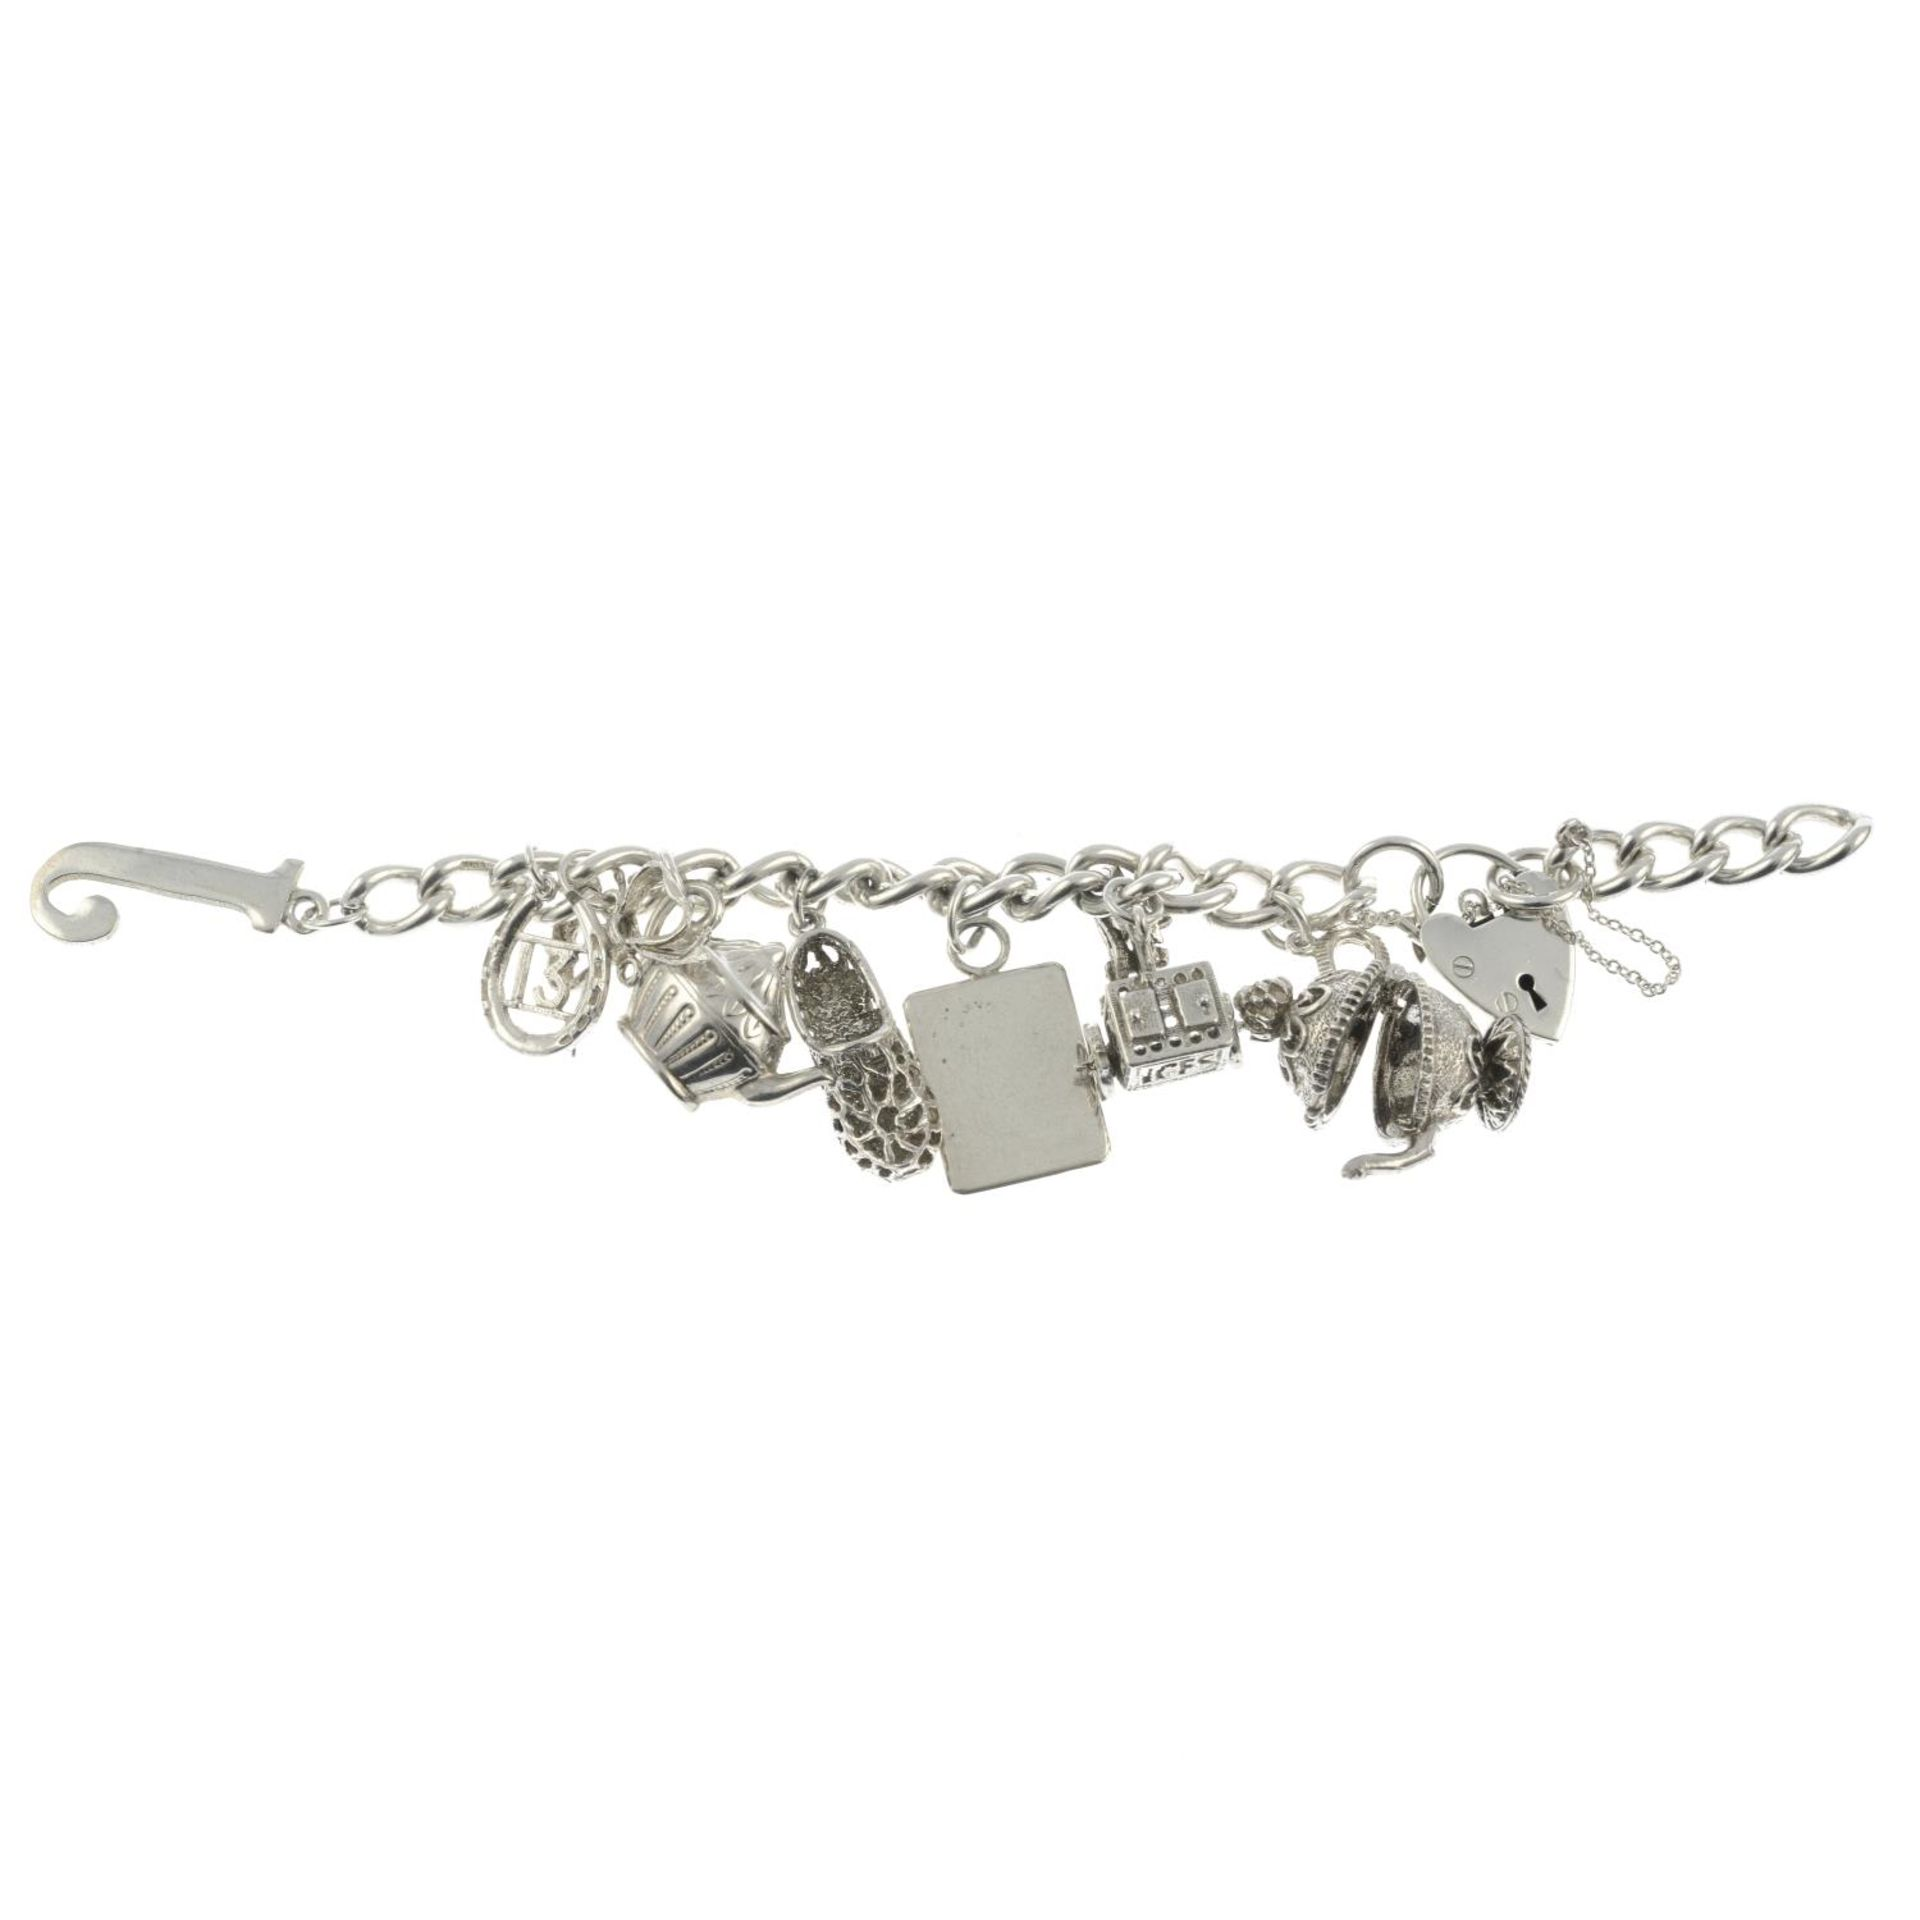 Two silver charm bracelets, a further charm bracelet and assorted charms. - Image 3 of 3